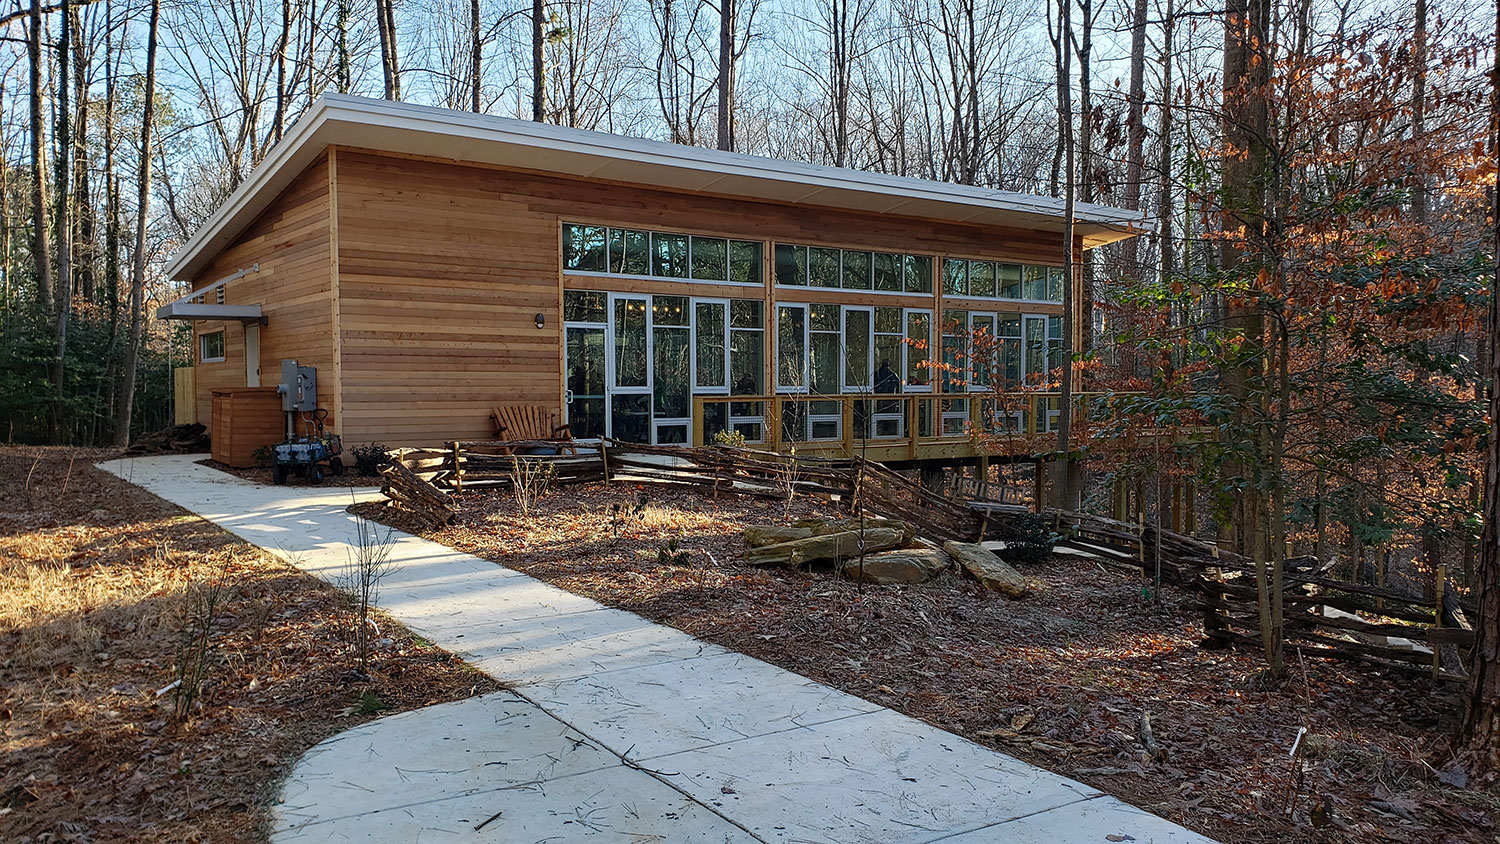 NCES_Dunwoody Nature Center